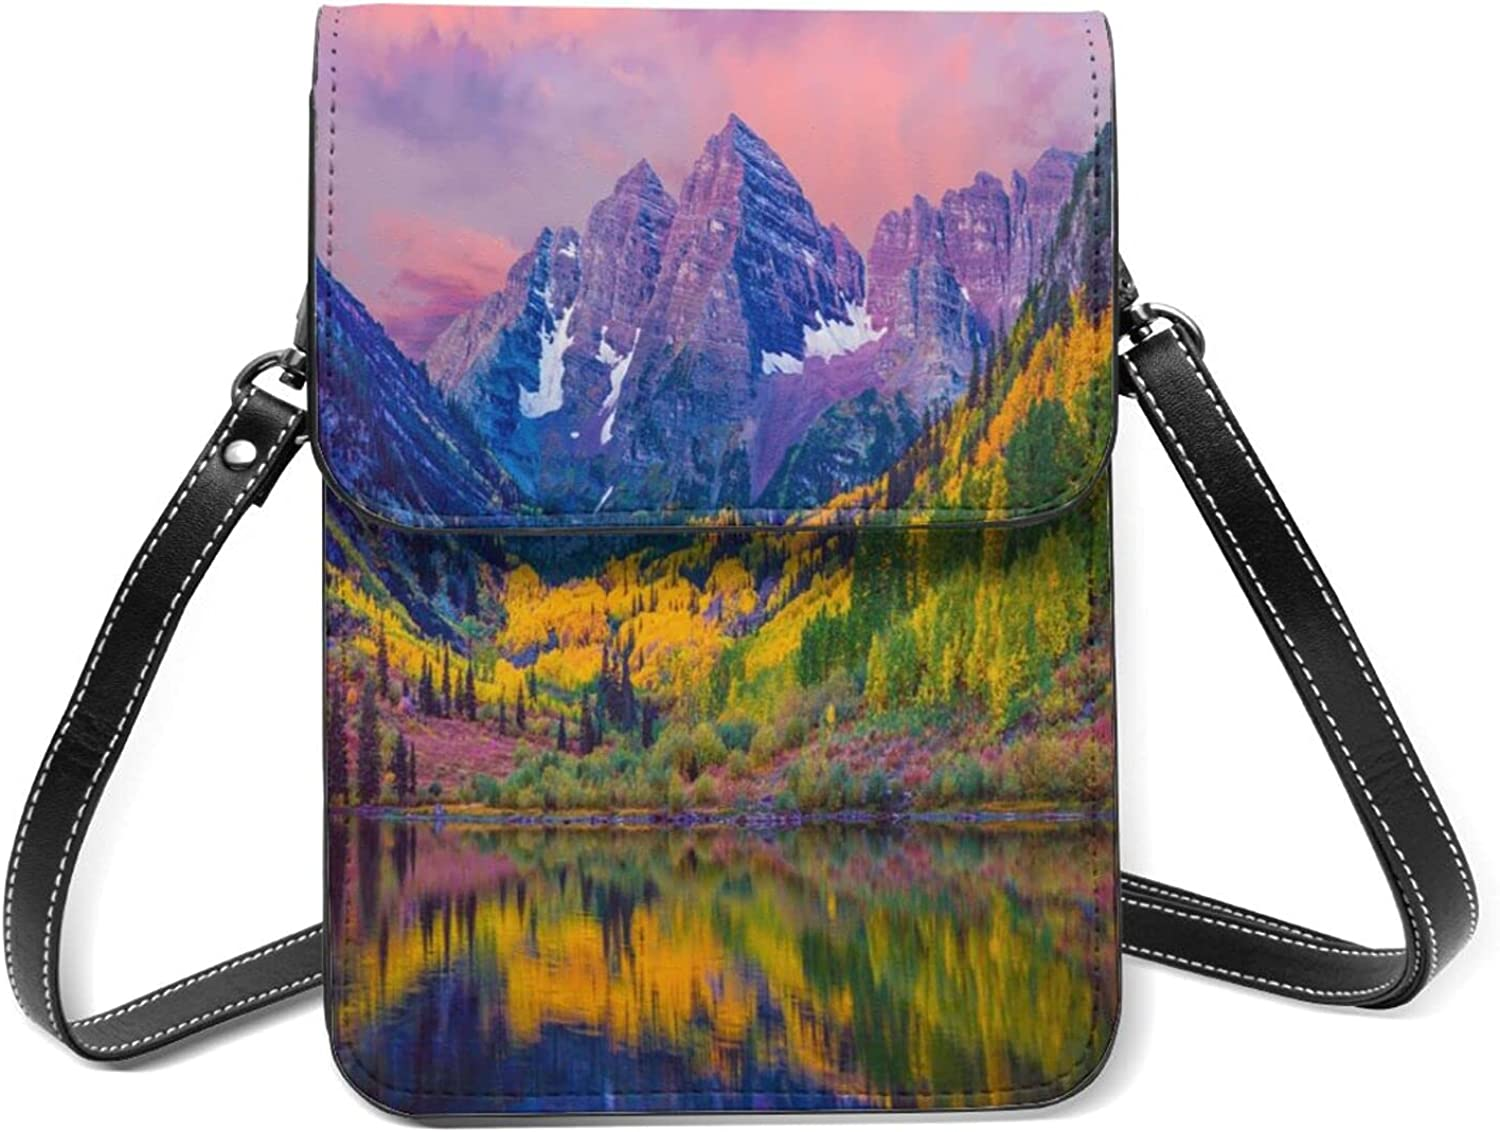 Landscape Scenery Small Cell Phone Super sale period limited Lightweight Purse With S Flip Sale SALE% OFF